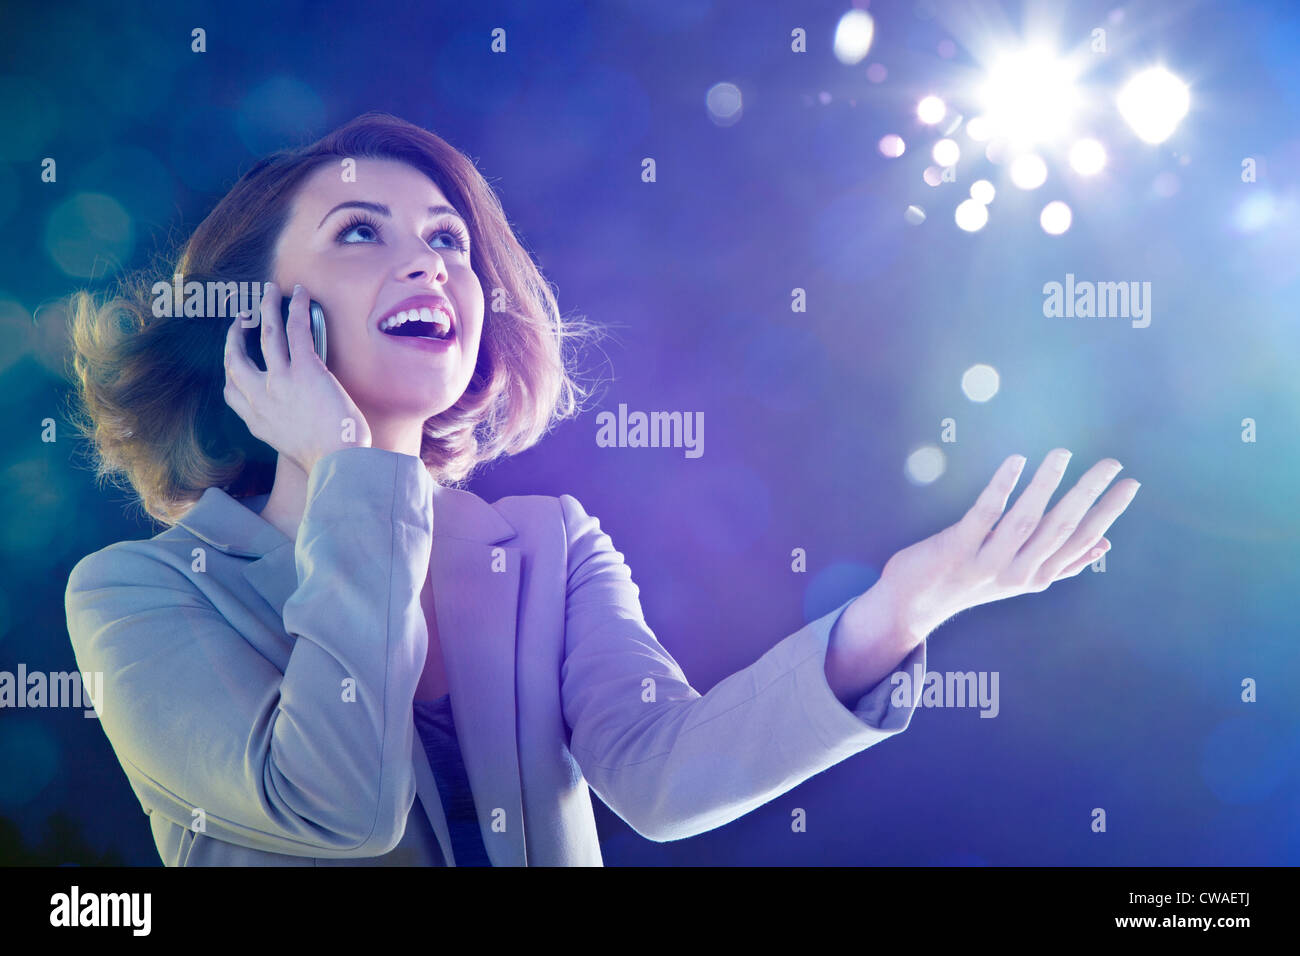 Young woman on cellphone, looking up at lights - Stock Image